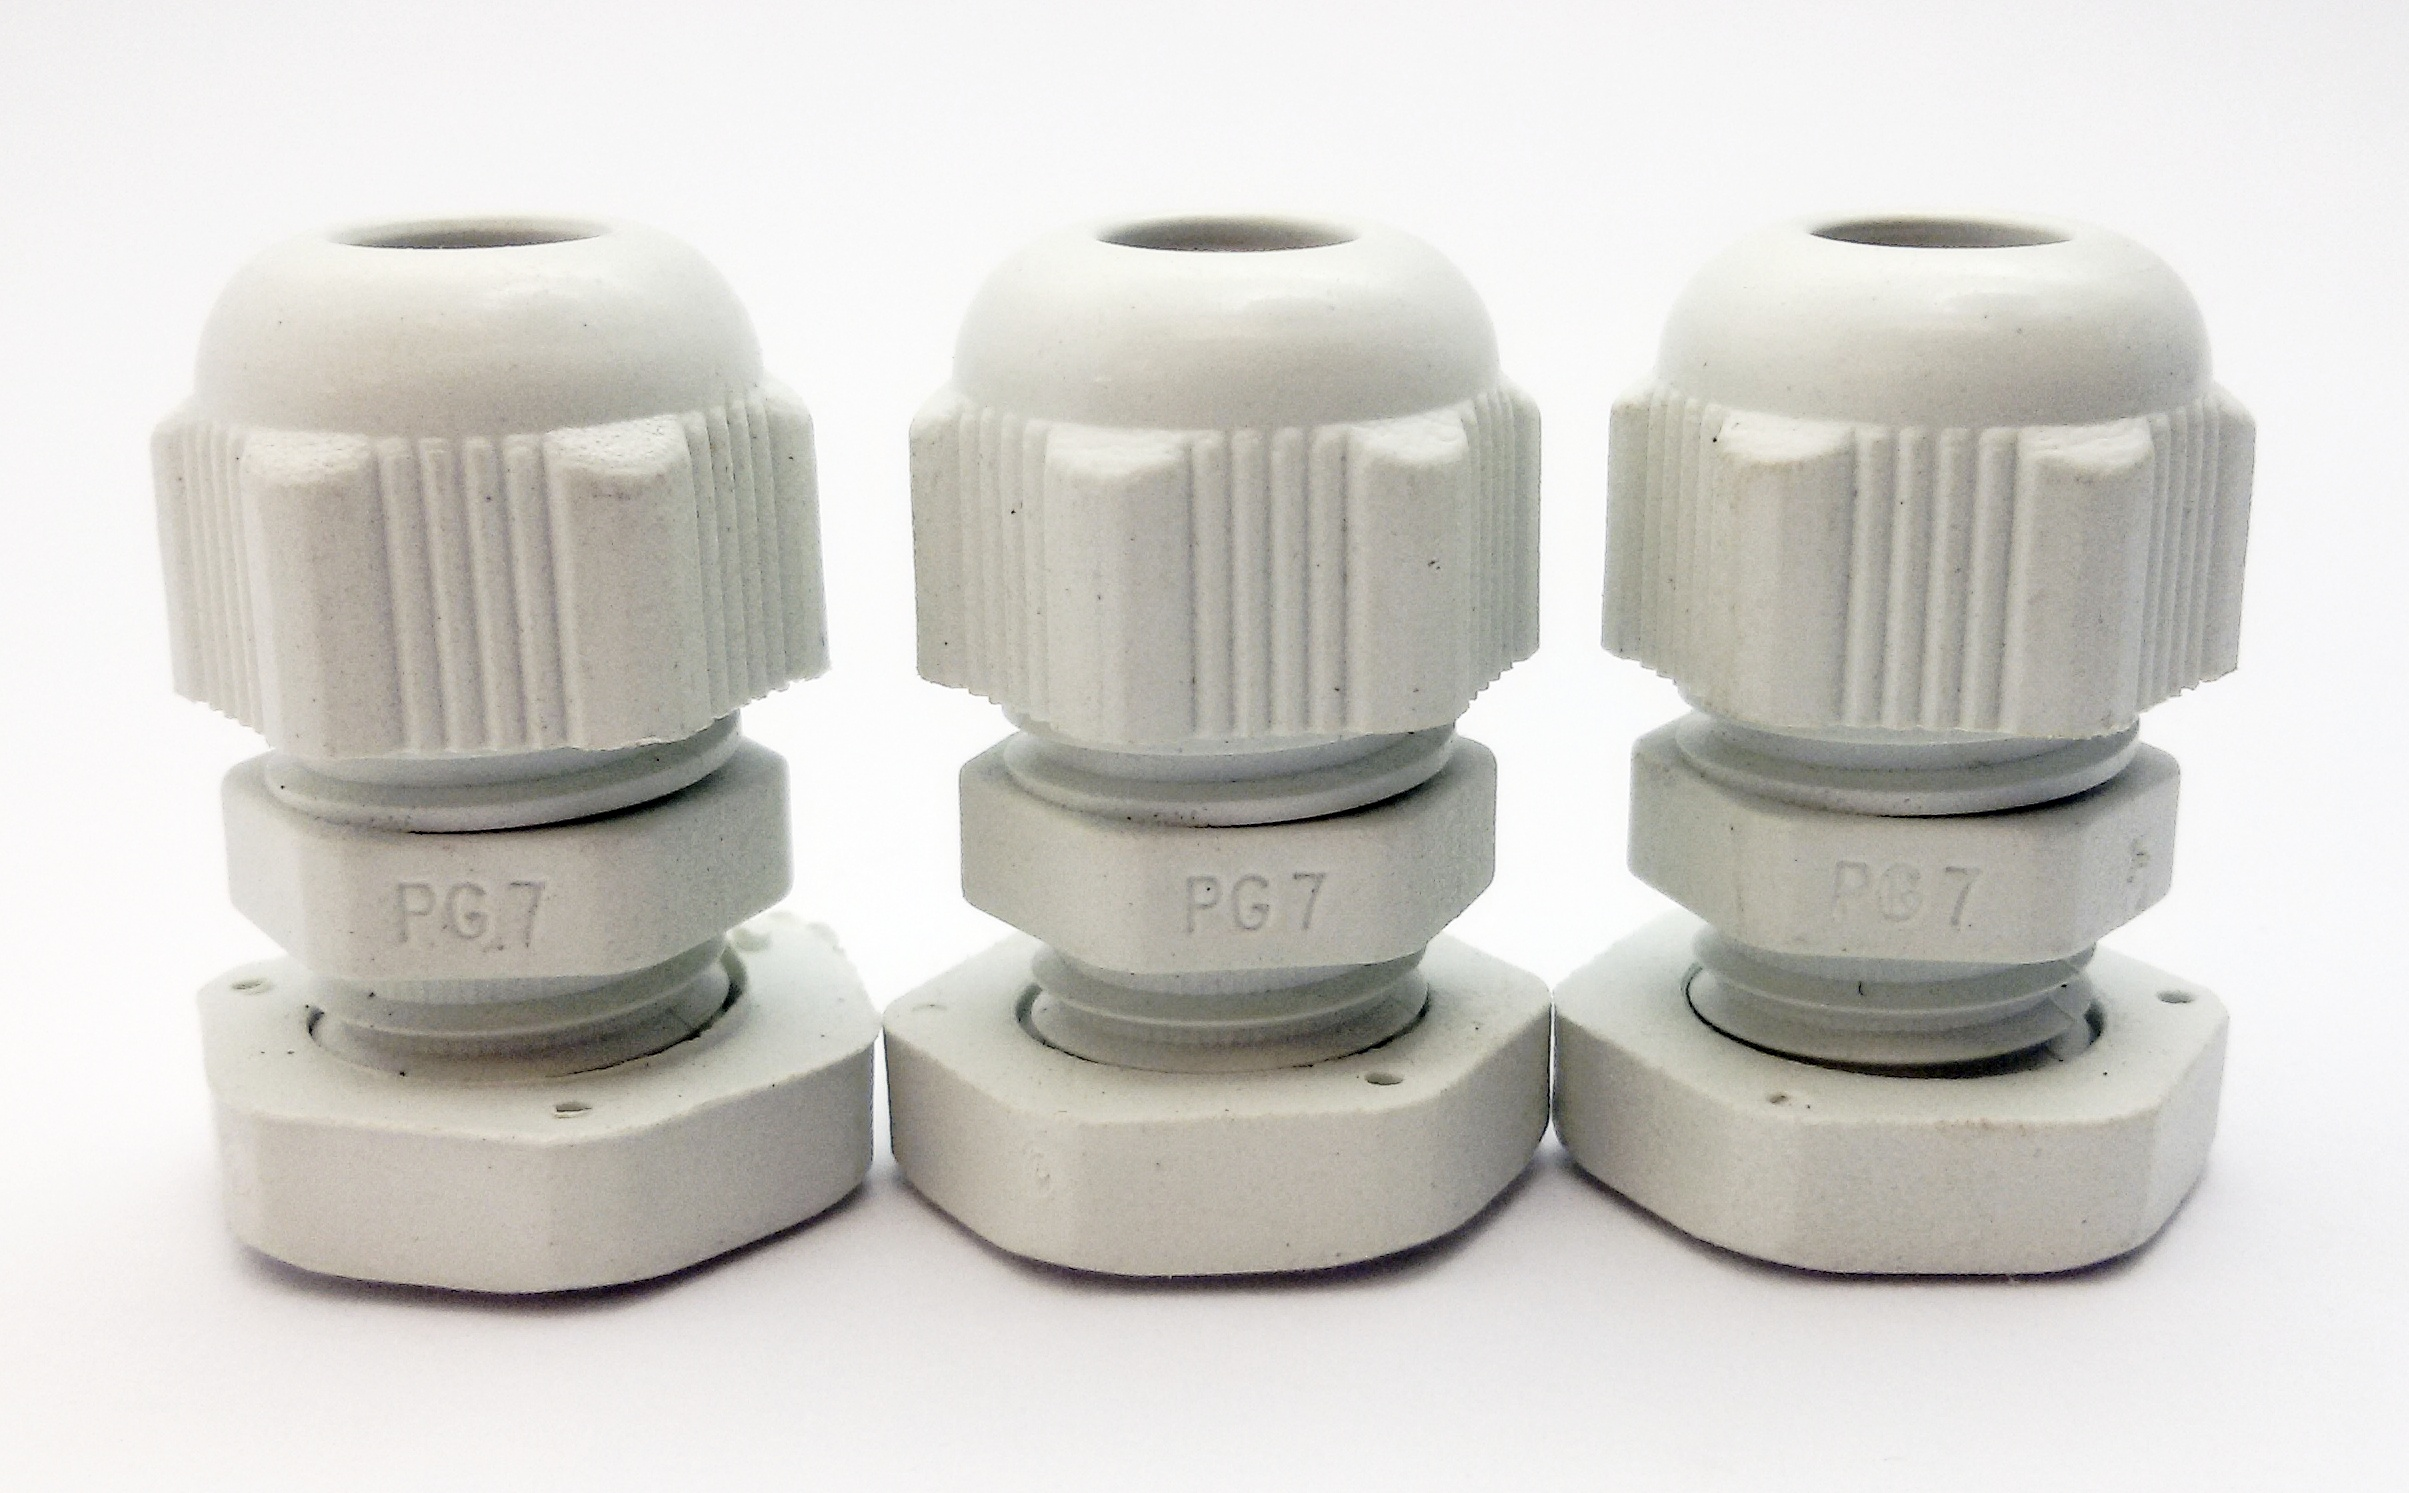 LOBO ELECTRIC CABLE GLAND PG7 3 - 6.5 mm. สีขาว